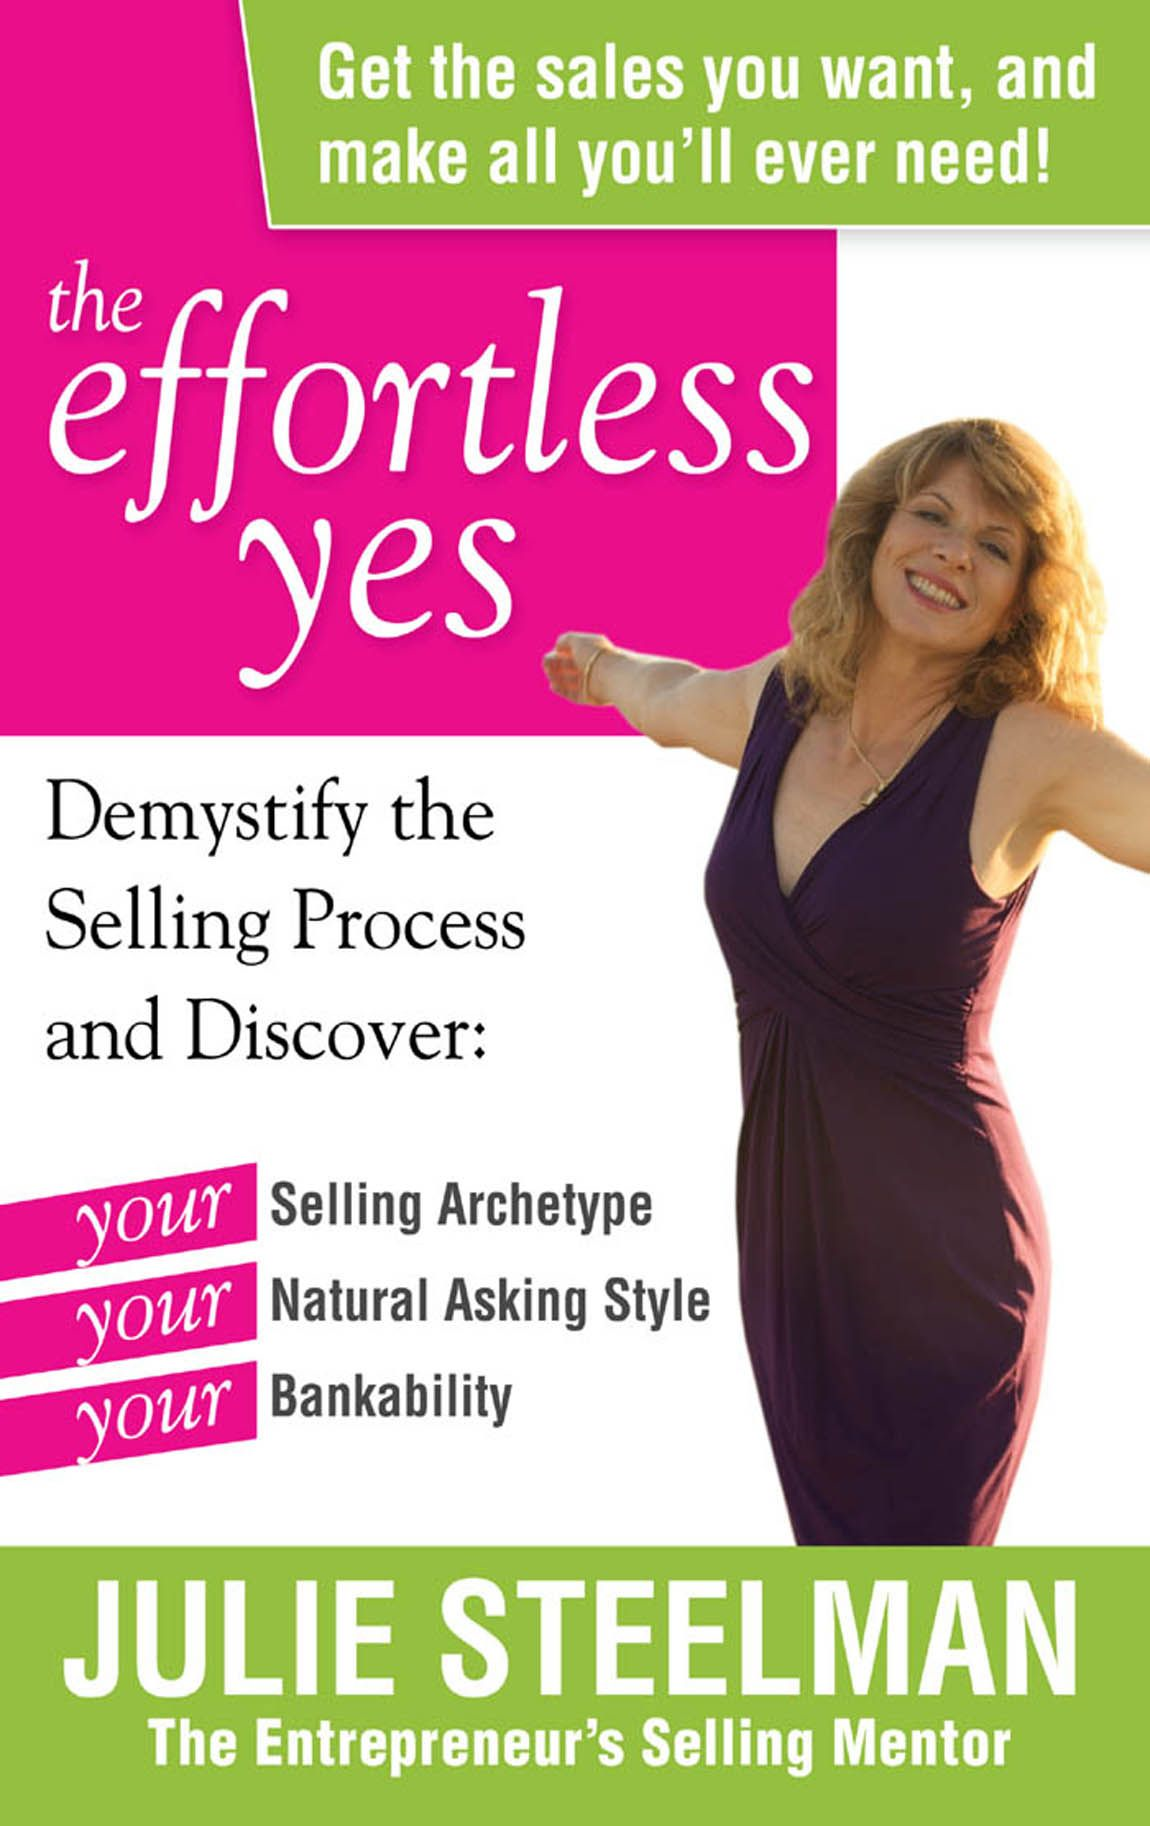 The Effortless Yes: Demystifying the Selling Process and Discover: Your Selling Archetype, Your Natural Asking Style, Yo